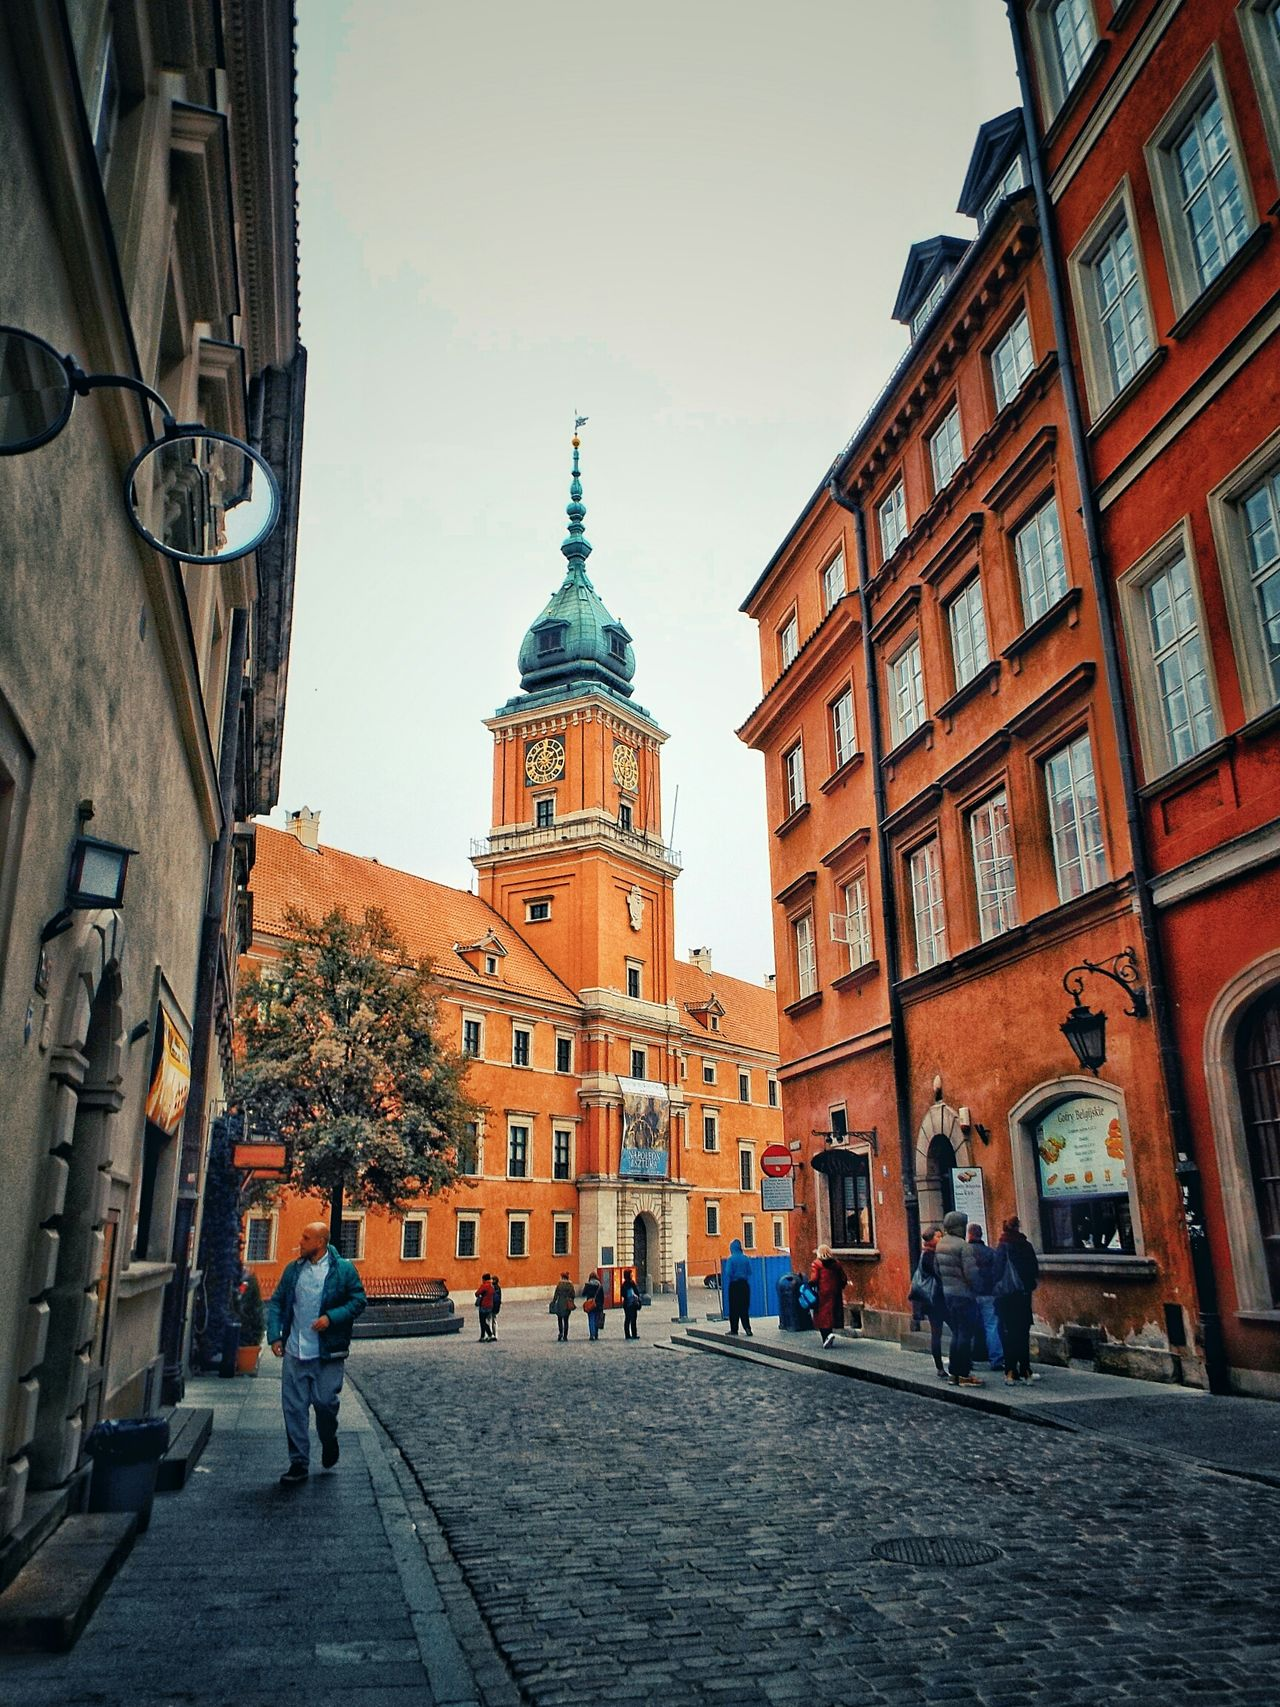 City Architecture Travel Destinations Travel Building Exterior Built Structure Tourism Castle Zamek Królewski Stare Miasto Warszawa  Warsaw Old Buildings Historical Building Historical Monuments Monument Street Photography Clock Tower Cityscape Sky Outdoors Clock Tower People Day